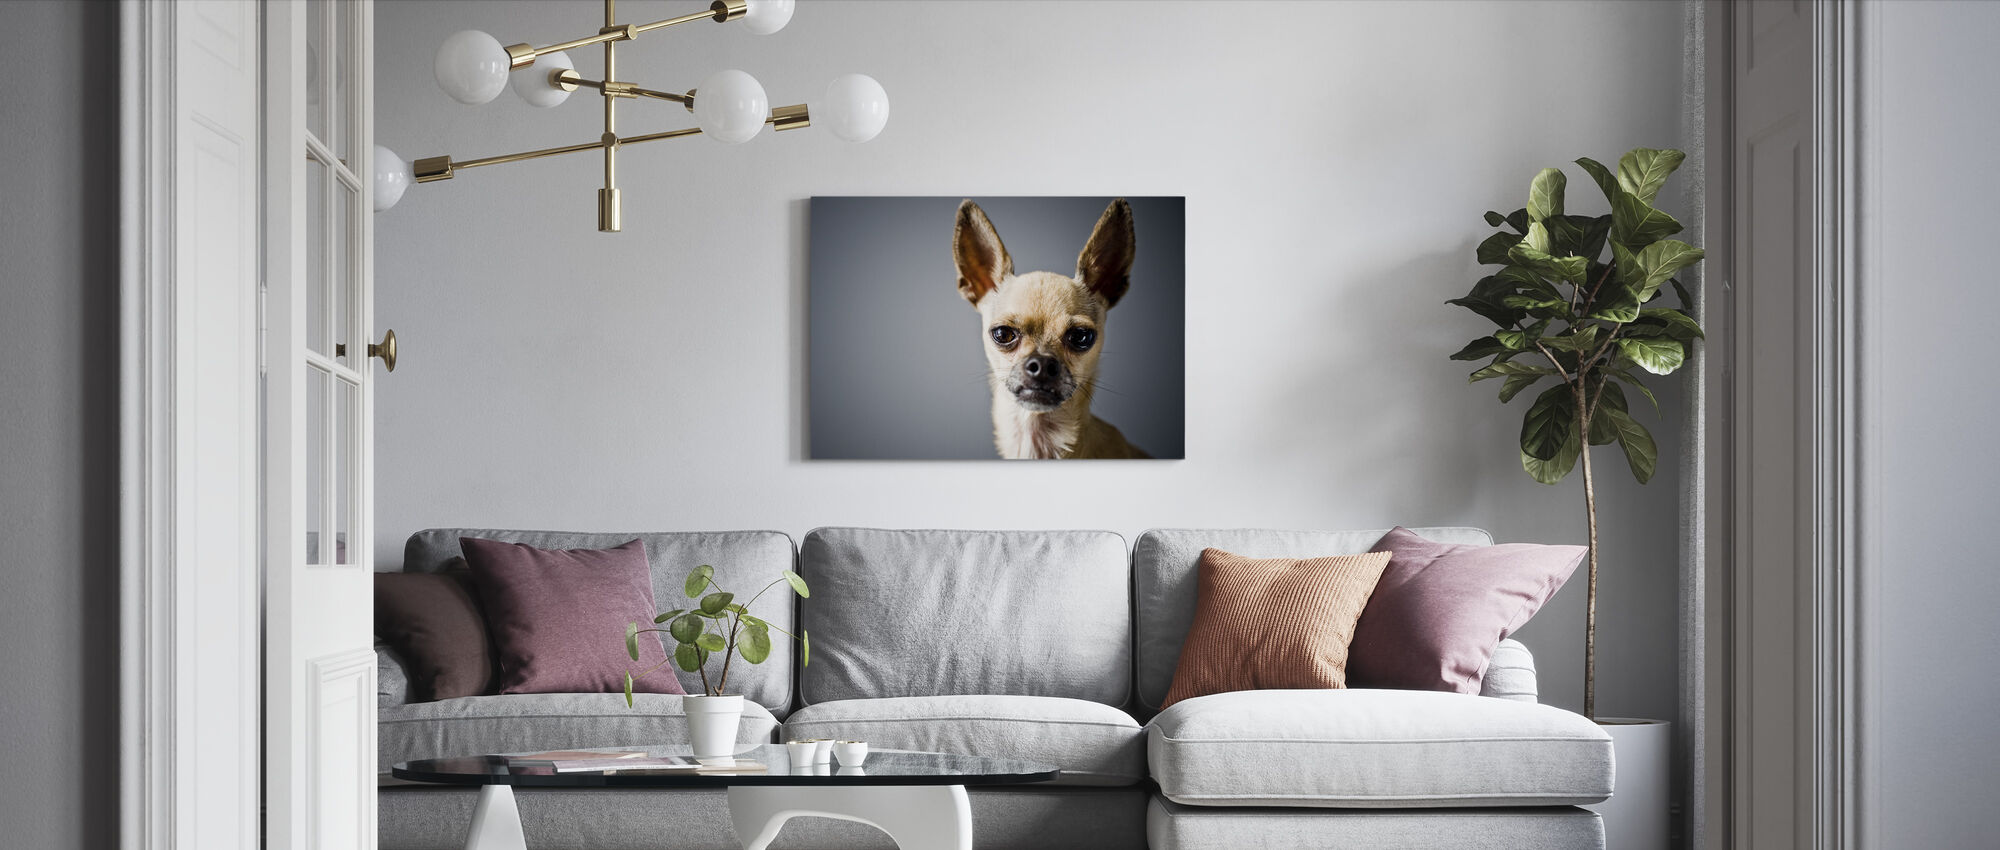 Chihuahua Imitating Lama - Canvas print - Living Room